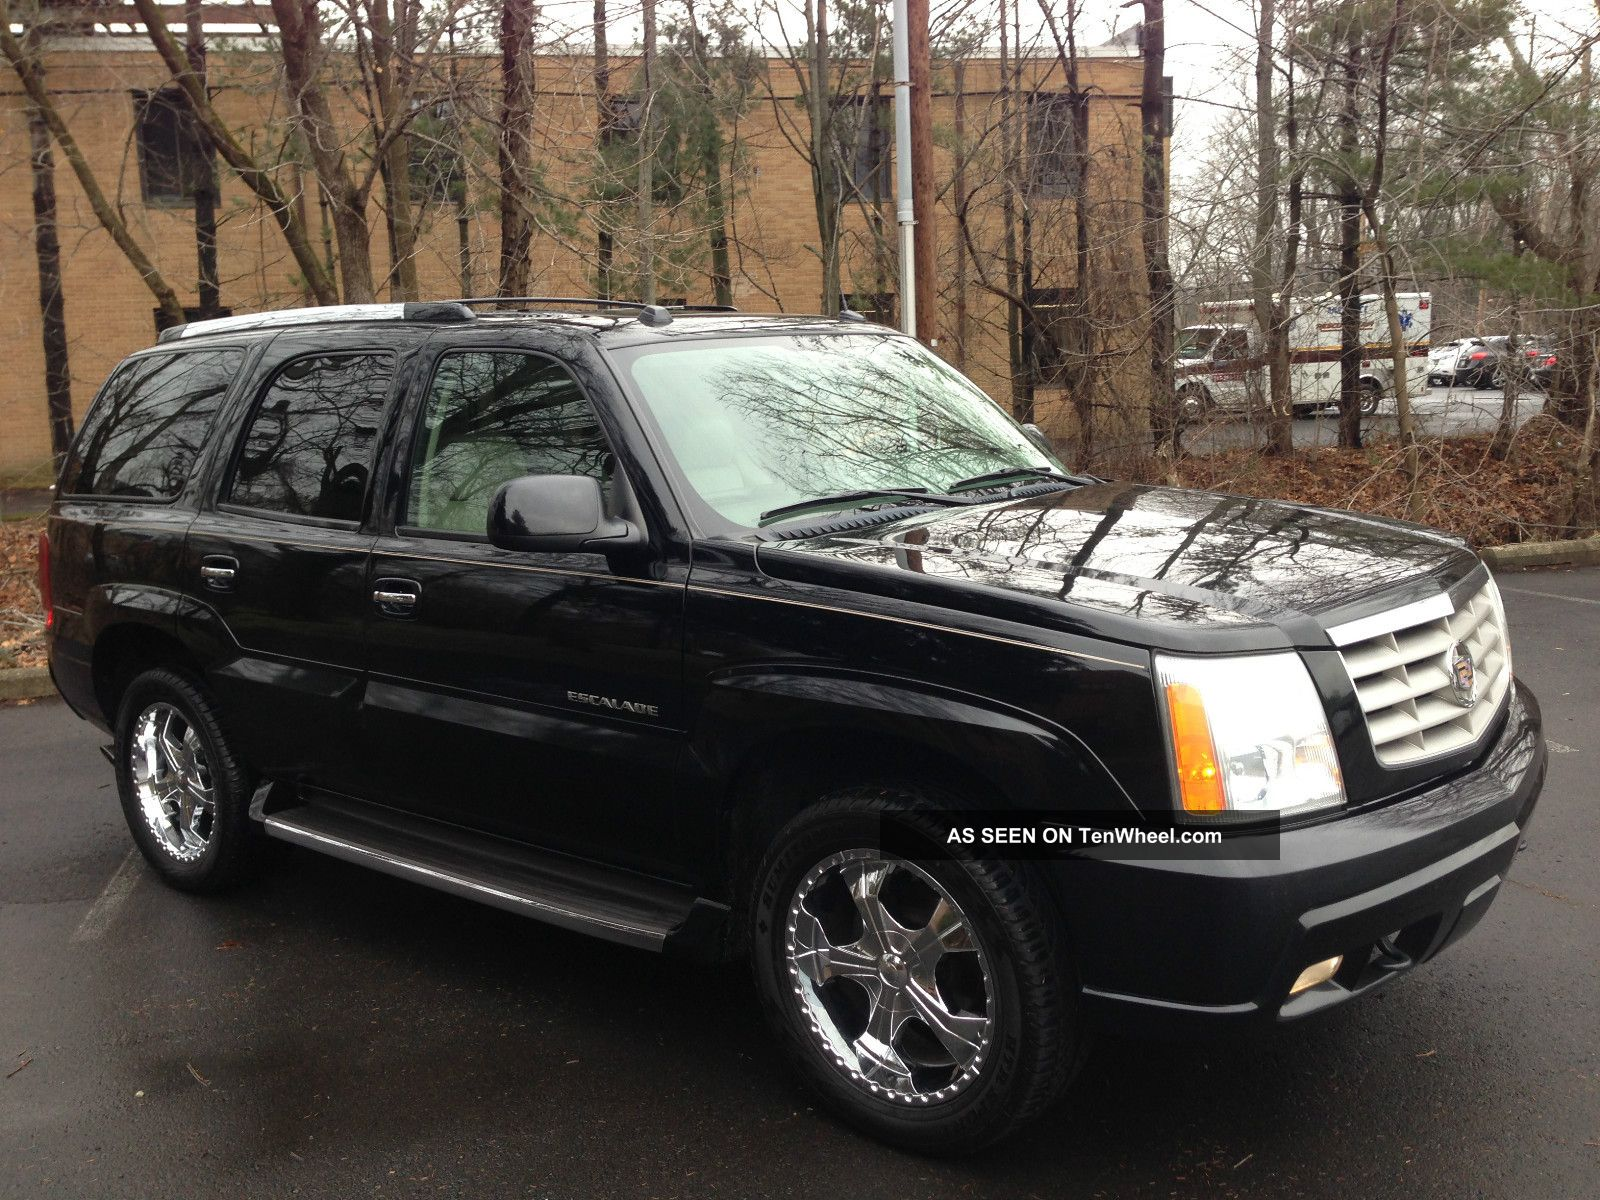 of auction house a ext image vicari cadillac at for sale auctions escalade luxury